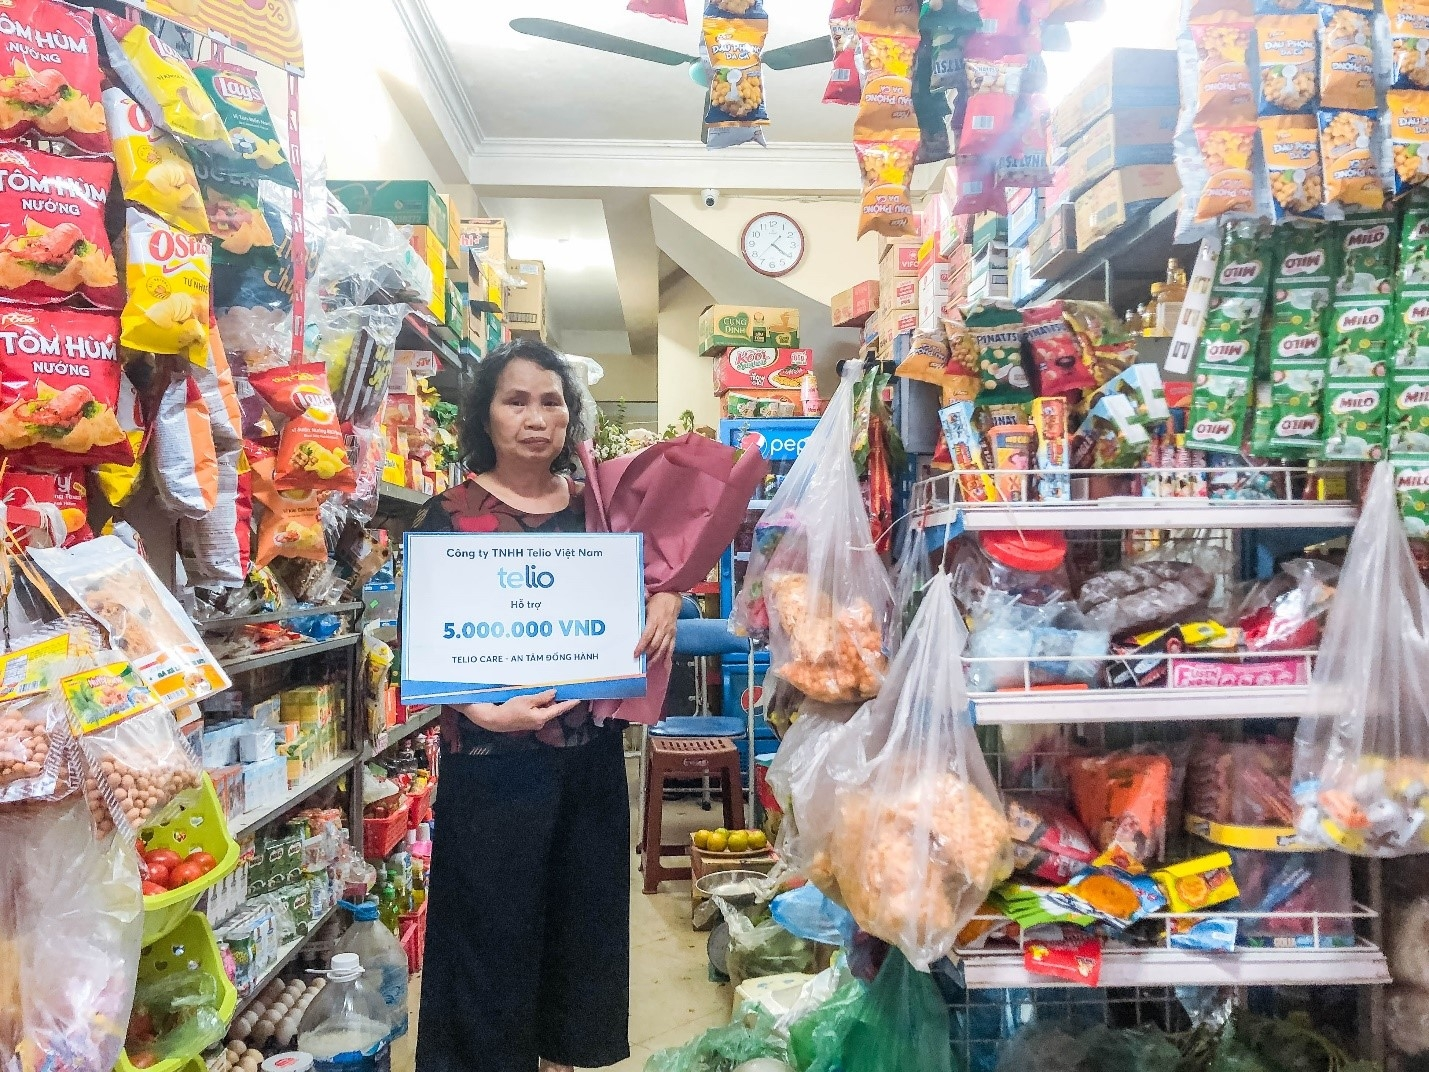 Telio Care supports struggling local retailers during COVID-19